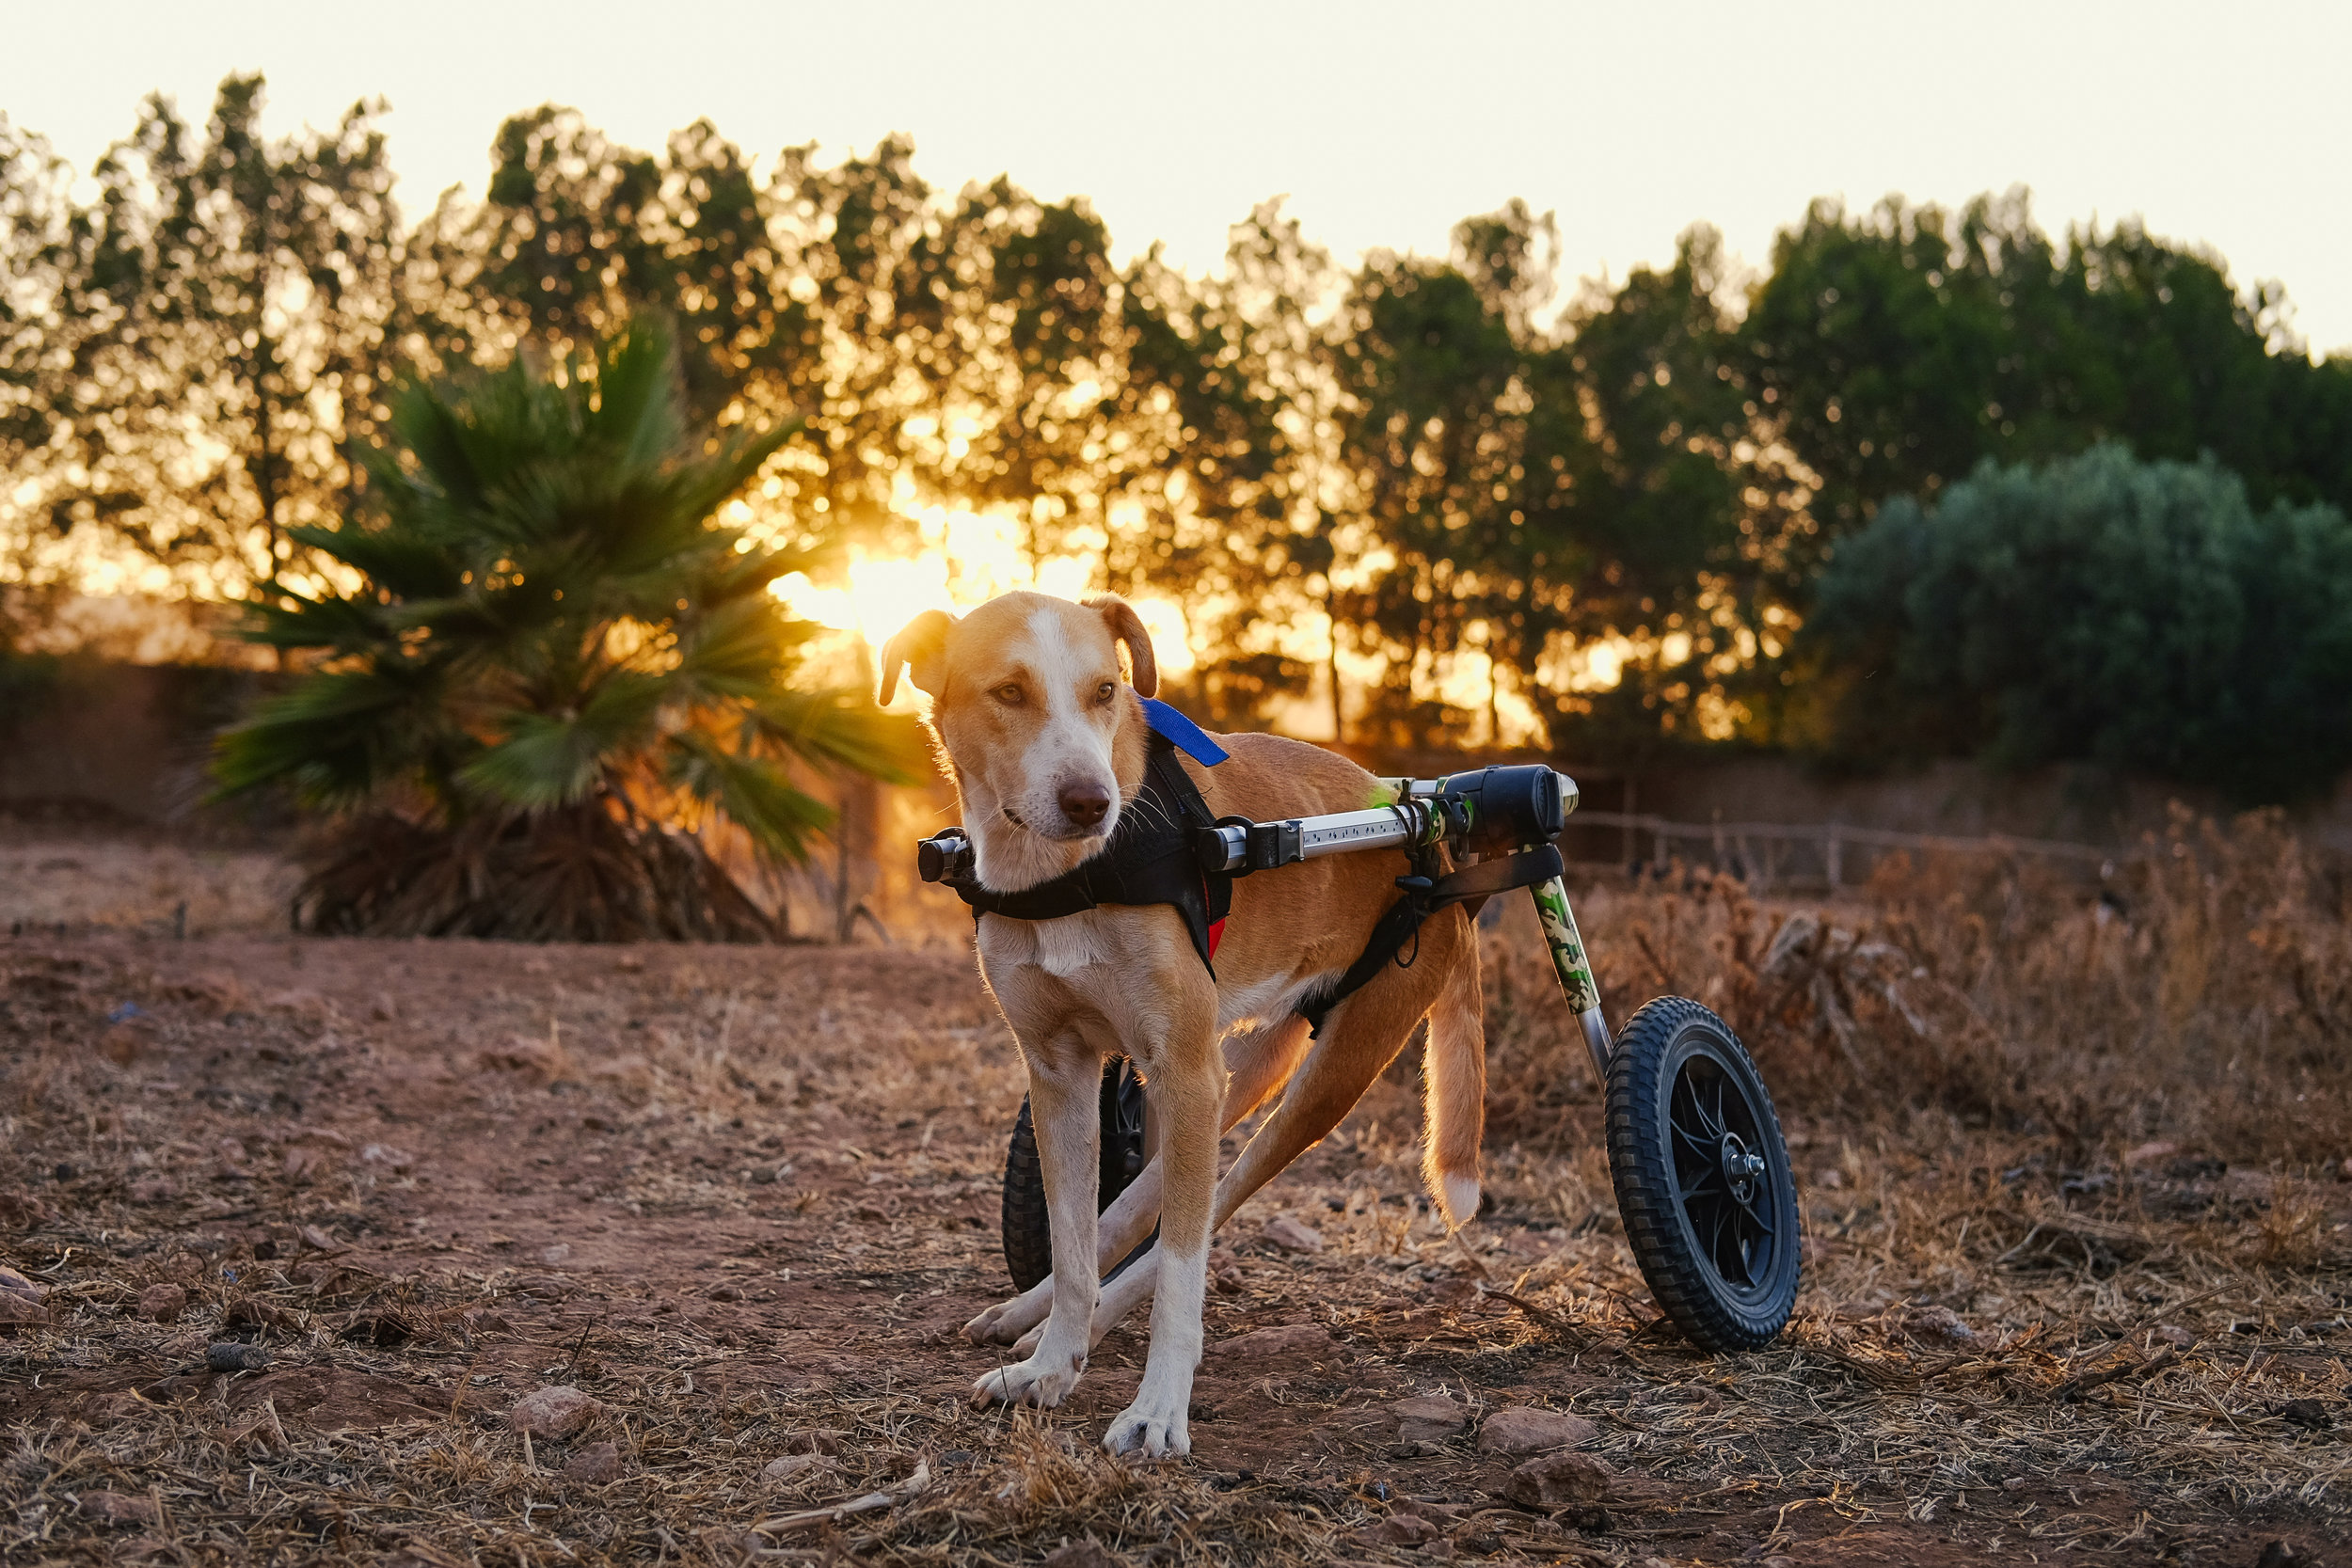 This is Dorado, one of the dogs being rehabilitated at C.A.R.E. in Essaouira, Morocco where I volunteered. (July 2019)